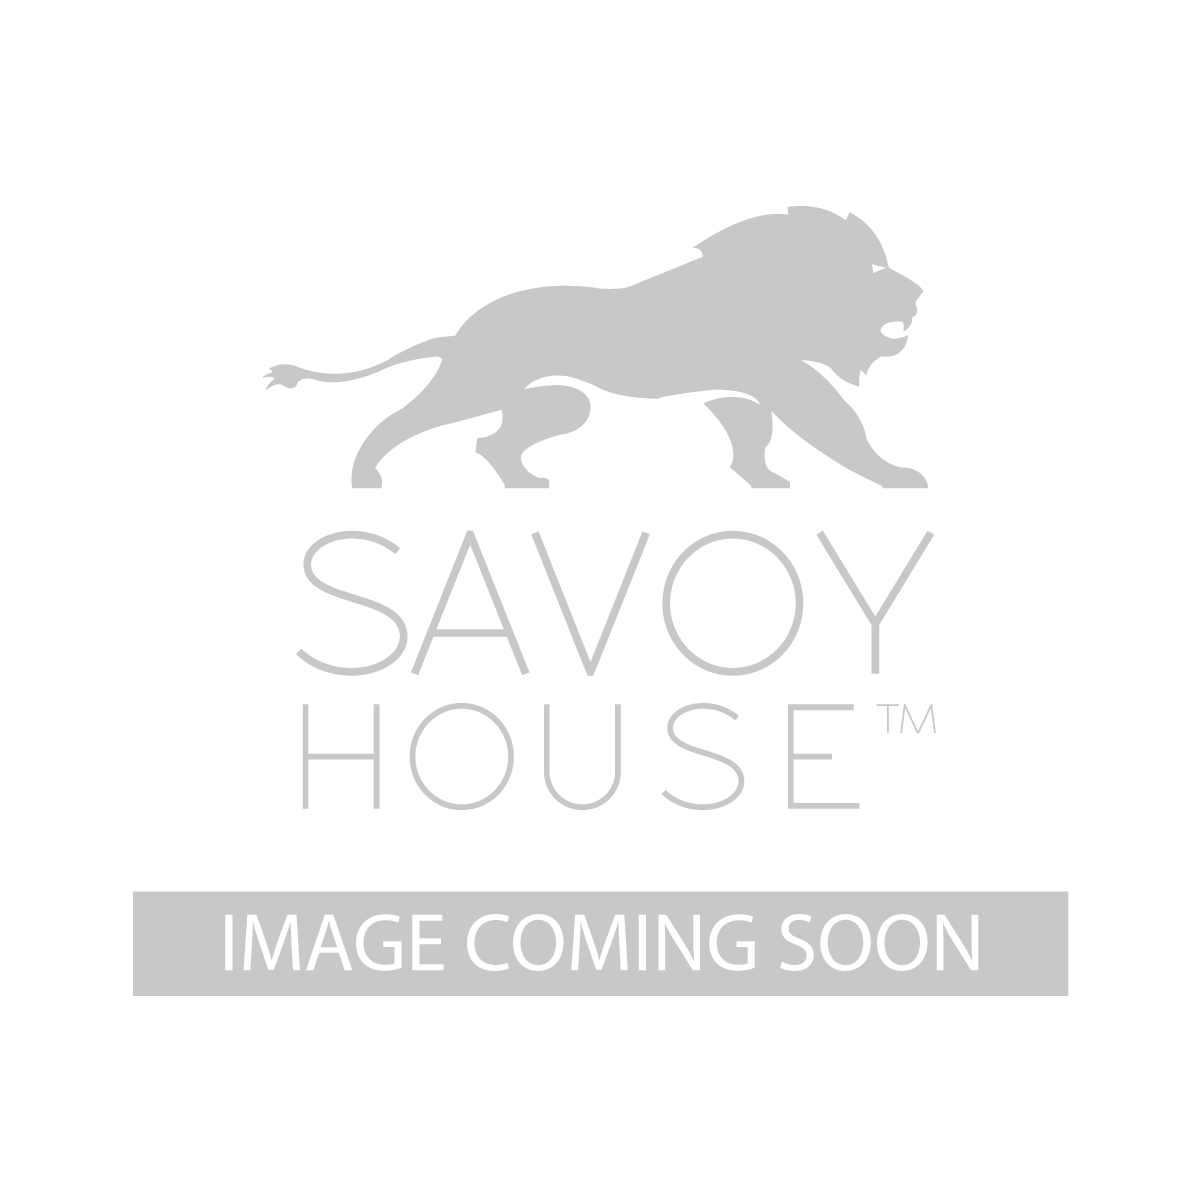 7 6099 24 44 galea 24 light chandelier by savoy house arubaitofo Image collections